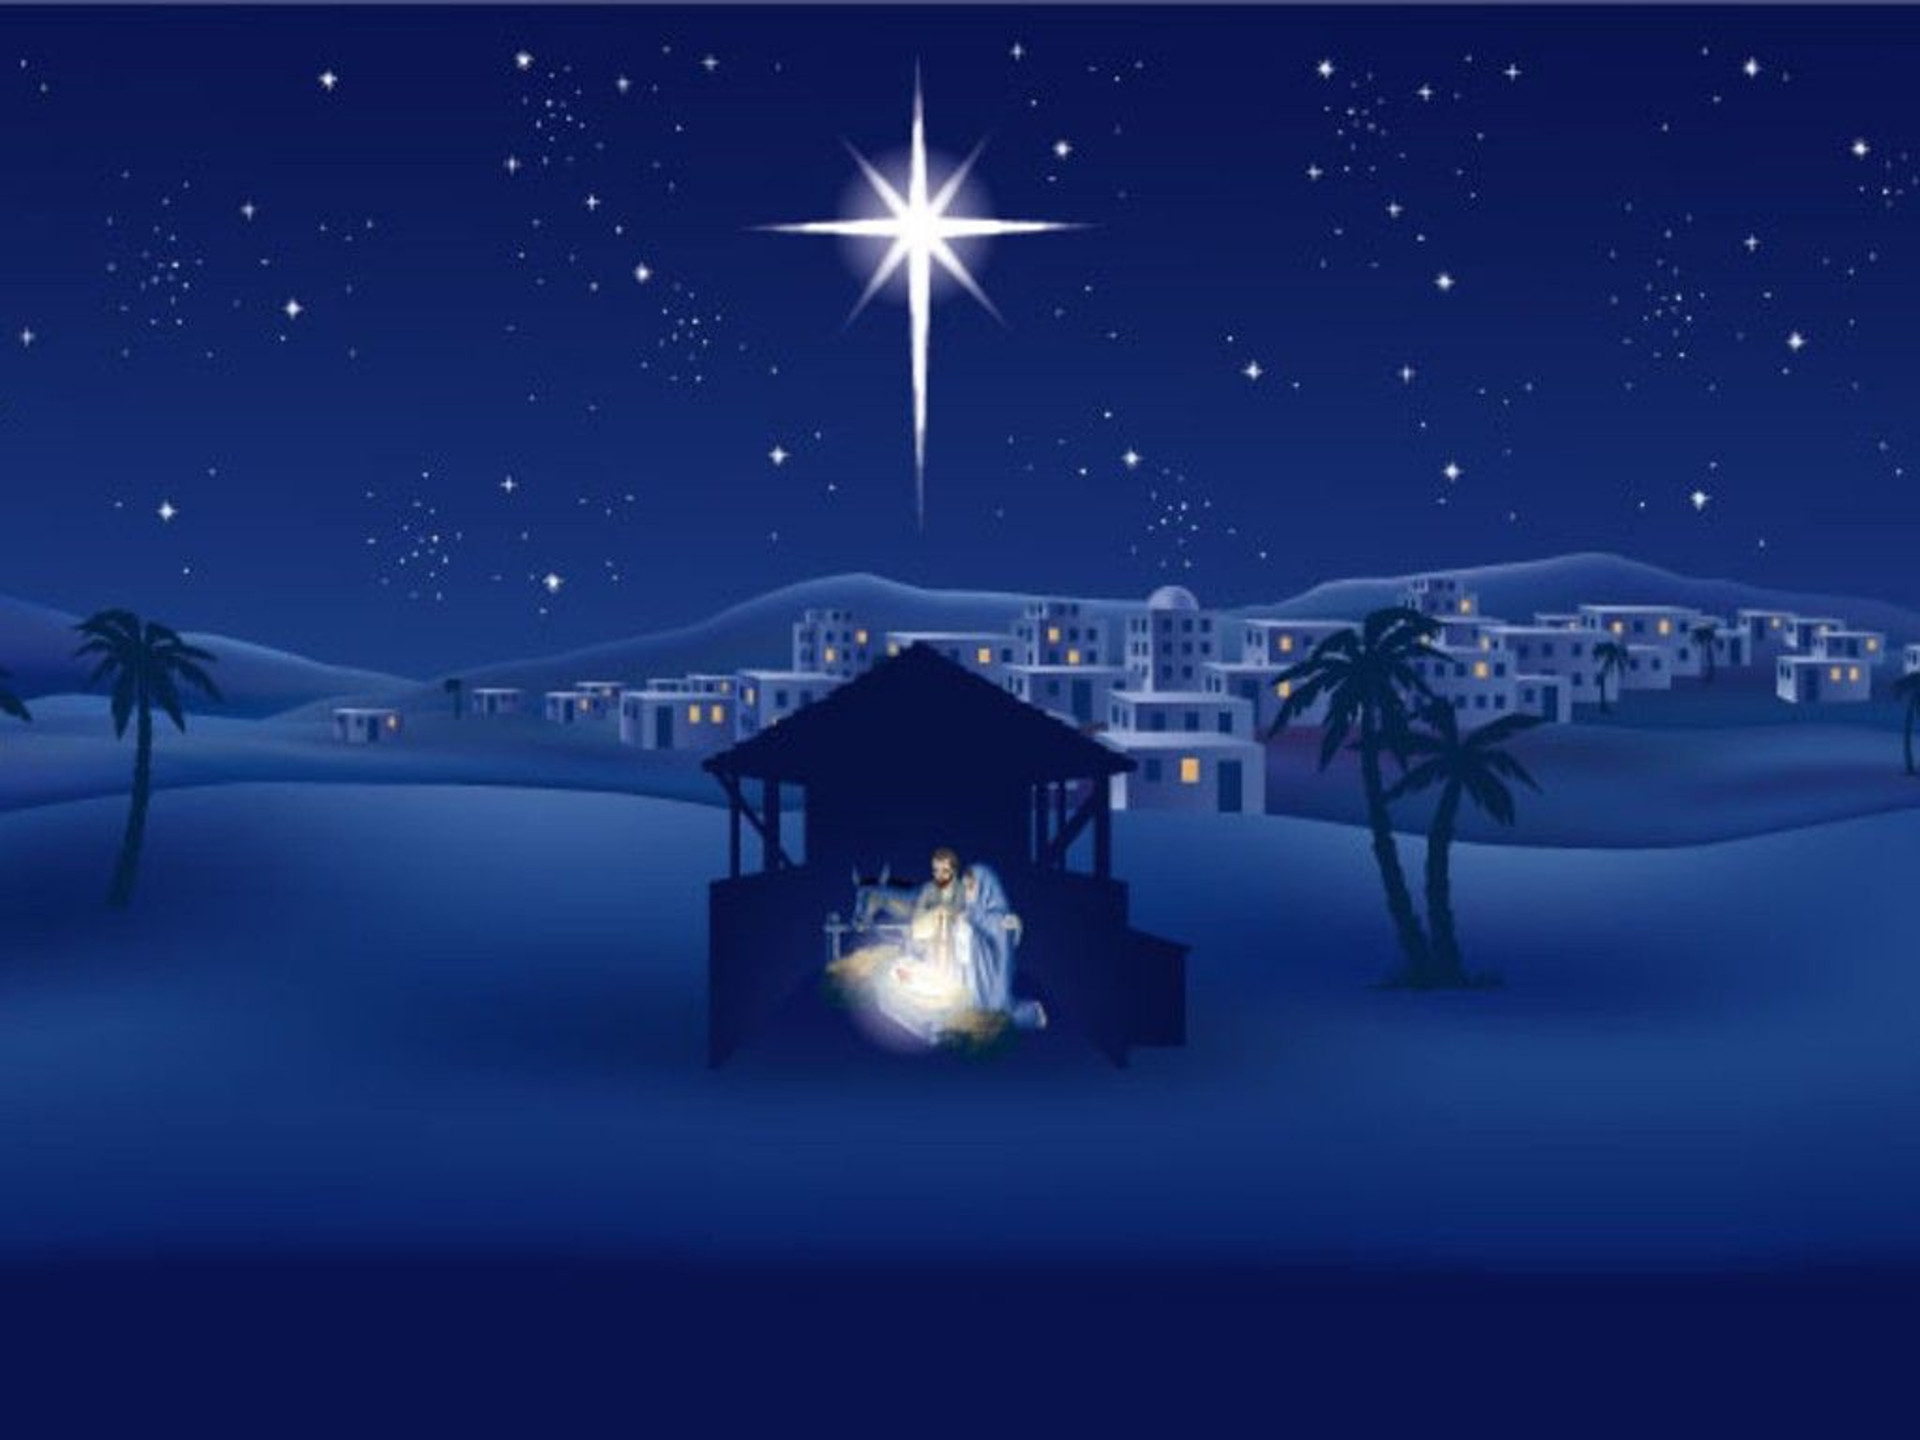 The christian war on christian symbols or the christian war on christmas biocorpaavc